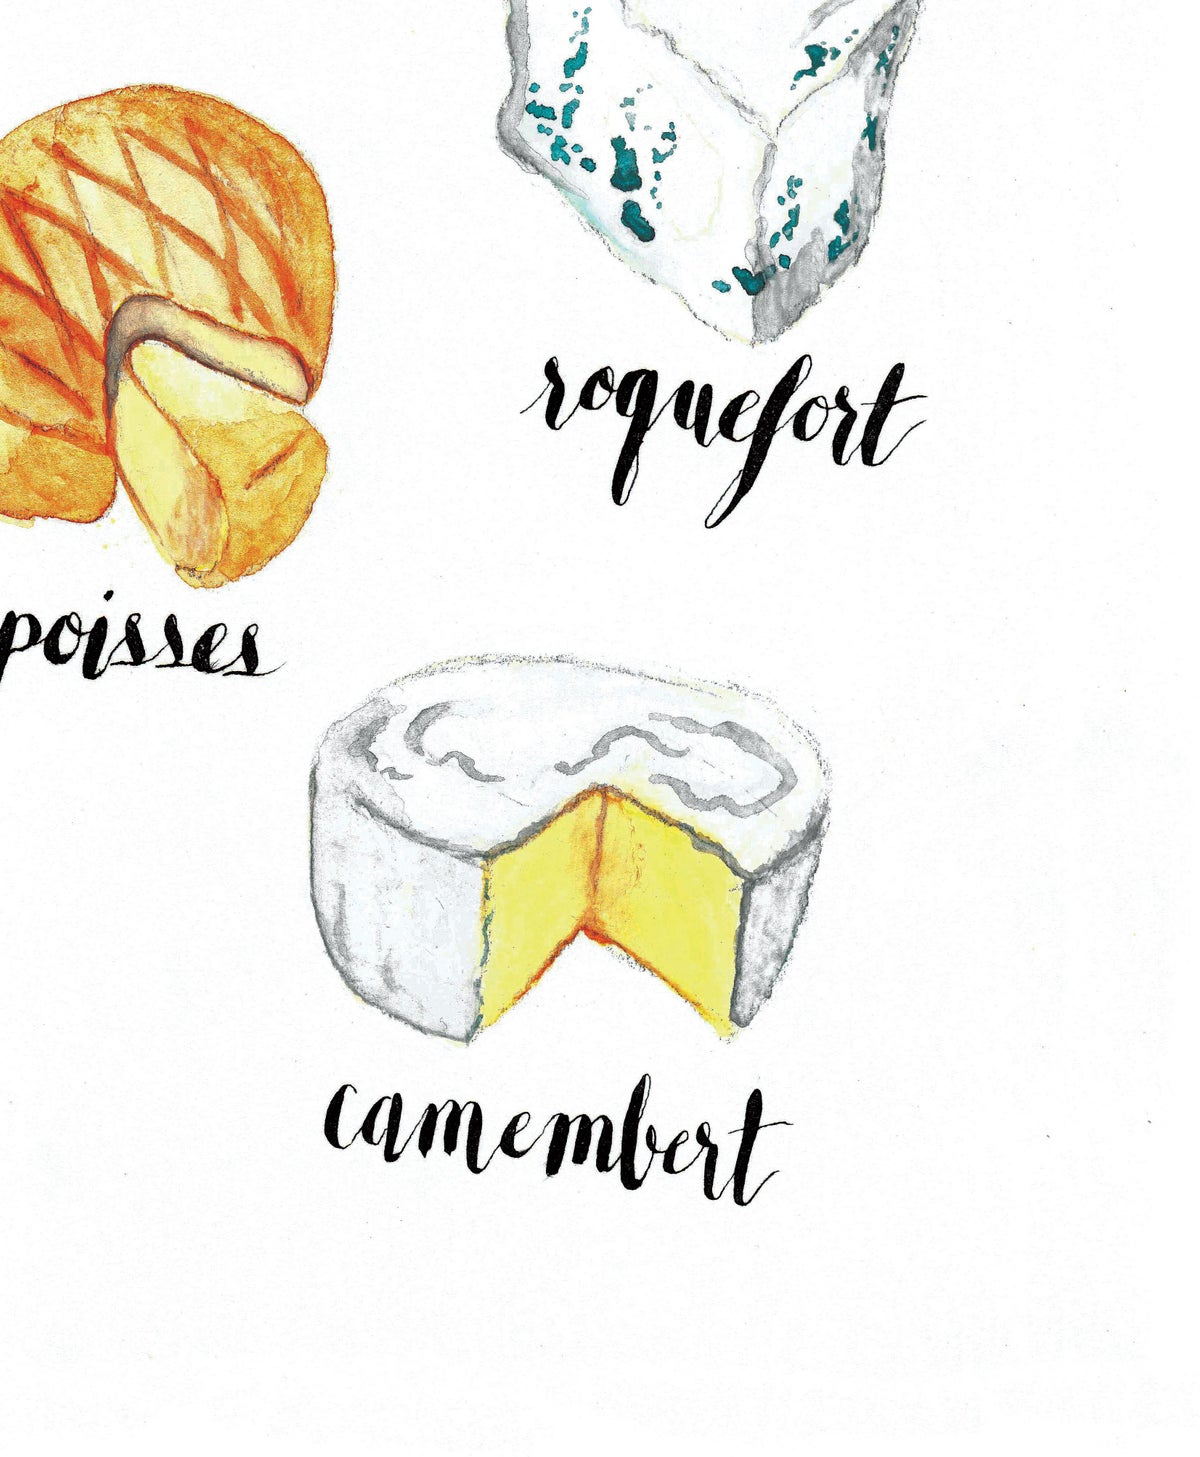 Image of Les Fromages Print